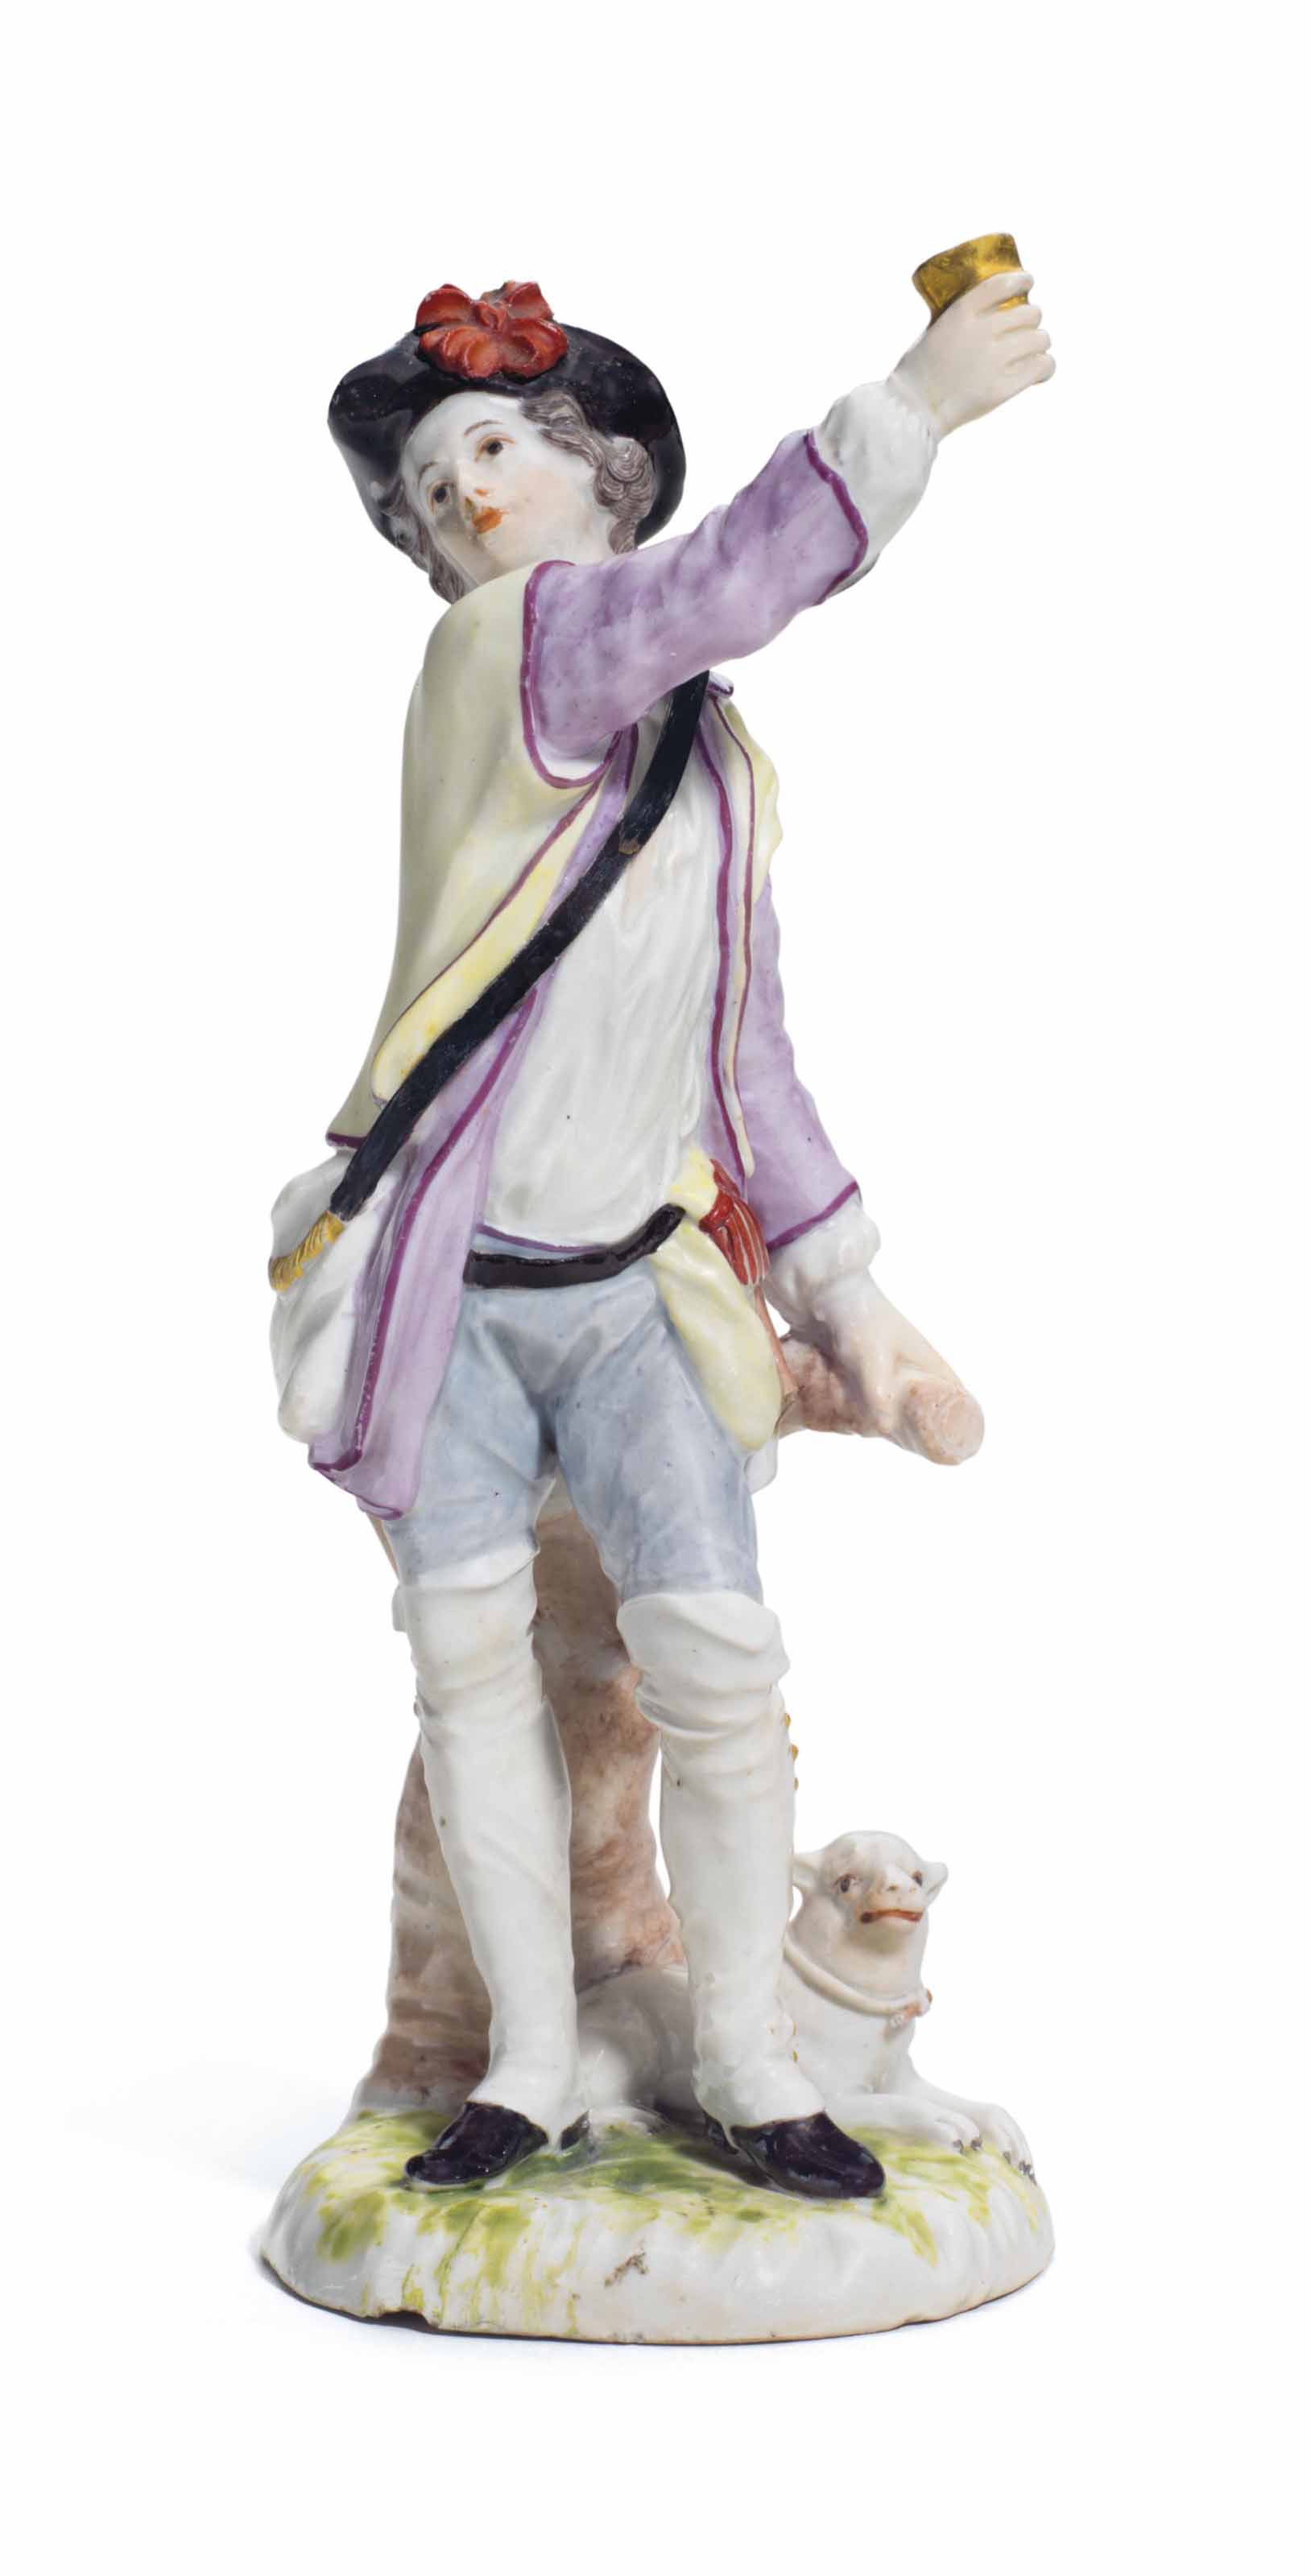 A LUDWIGSBURG PORCELAIN FIGURE OF A SHEPHERD